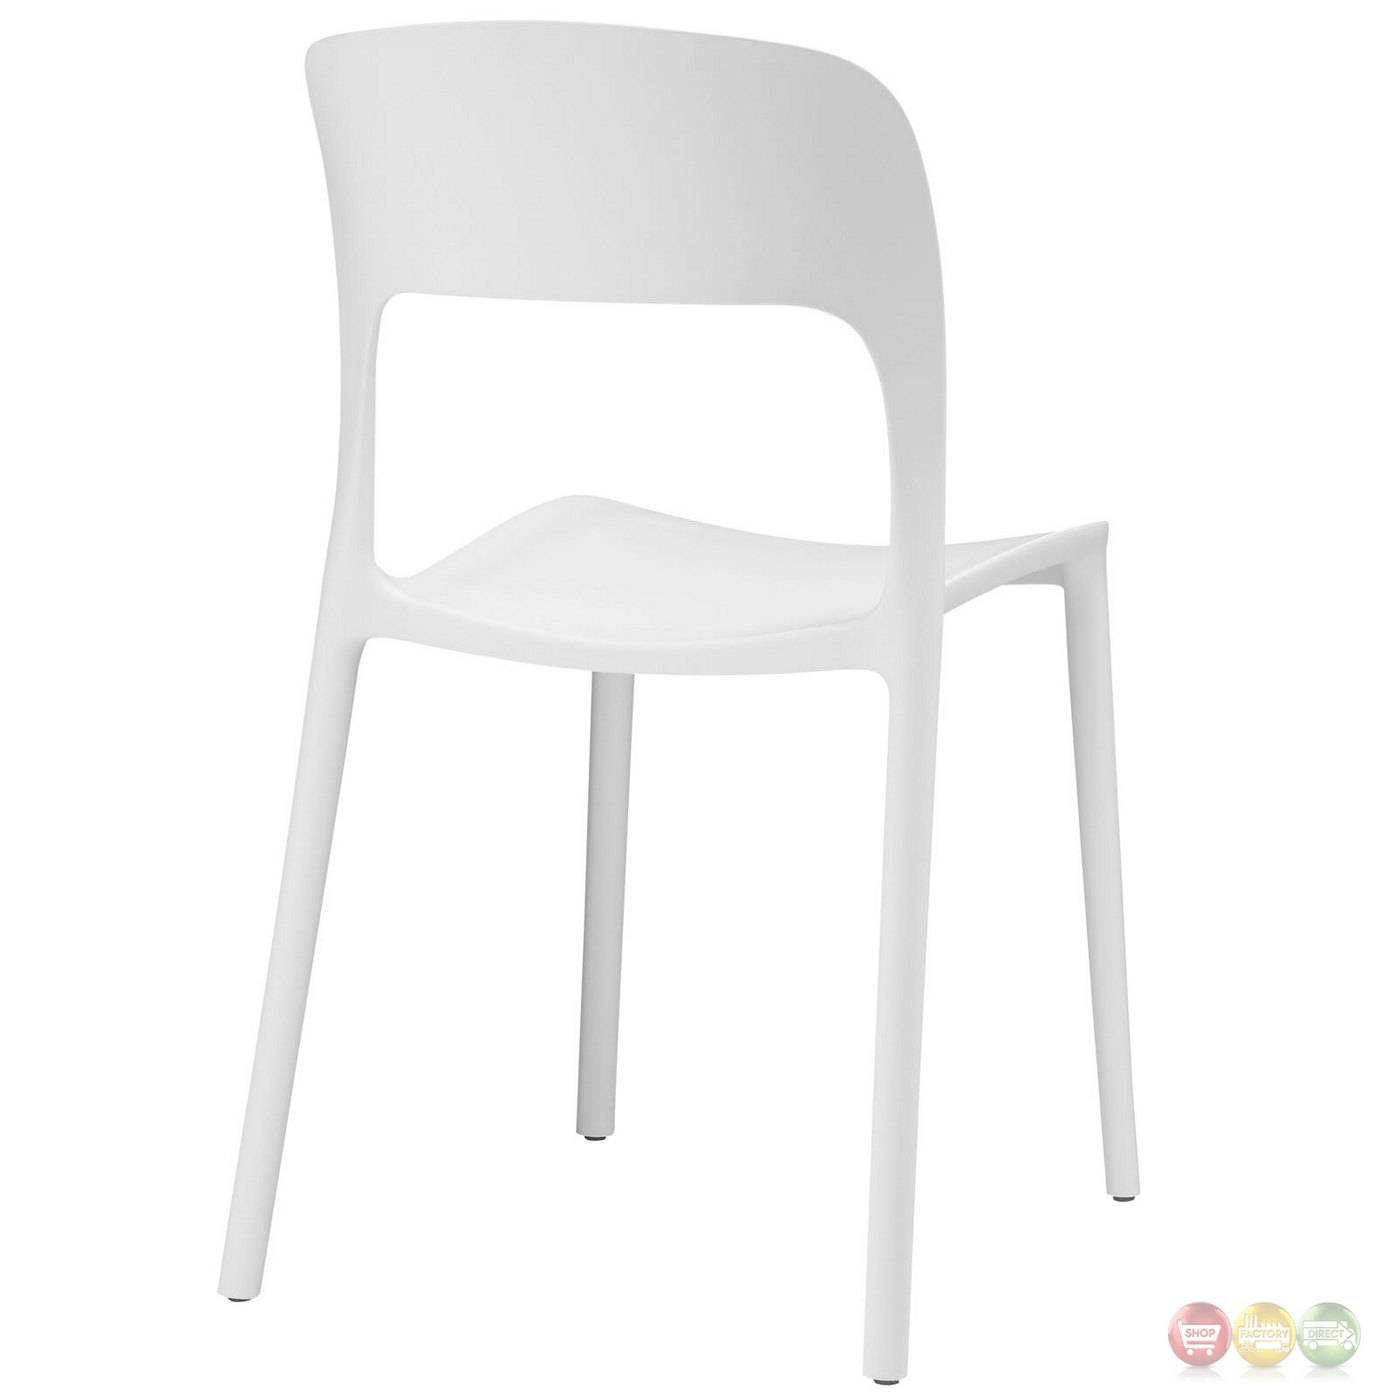 White Plastic Modern Chairs Hop Modern Stackable Plastic Dining Side Chair White